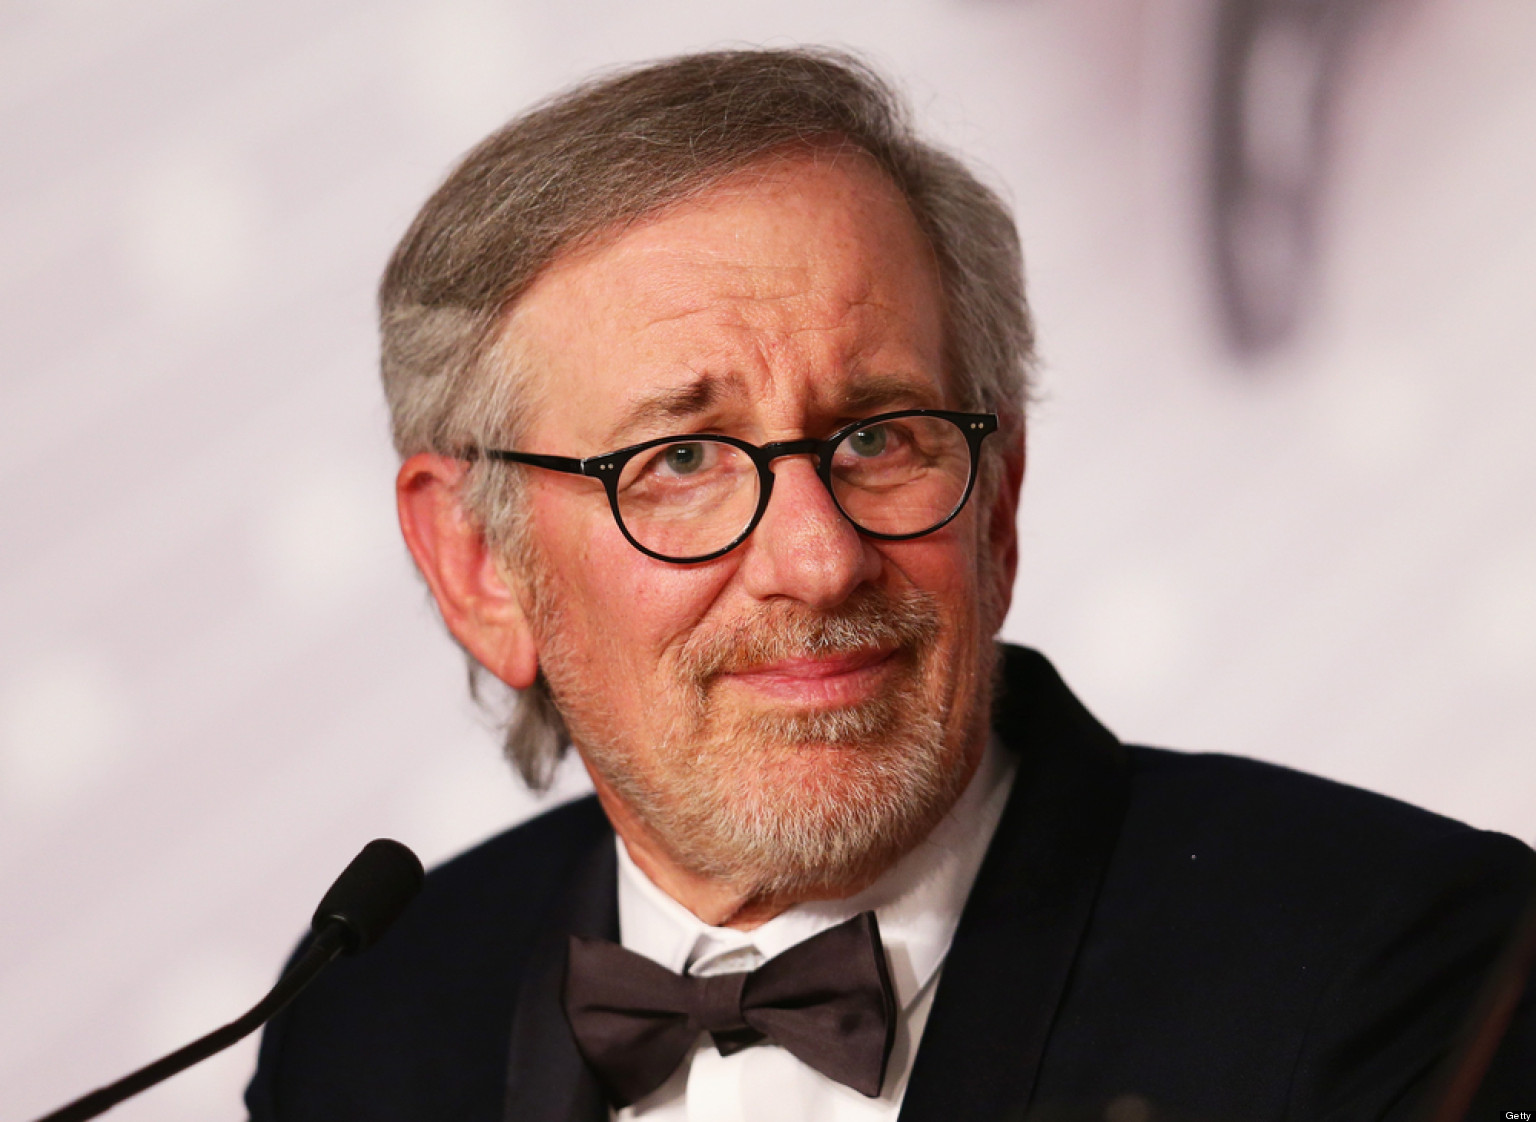 the contributions of steven spielberg in the american movie industry Film a short film norman rockwell from the collections of george lucas and steven spielberg is organized by the smithsonian american art museum the museum also gratefully acknowledges the contributions of george lucas and steven spielberg.